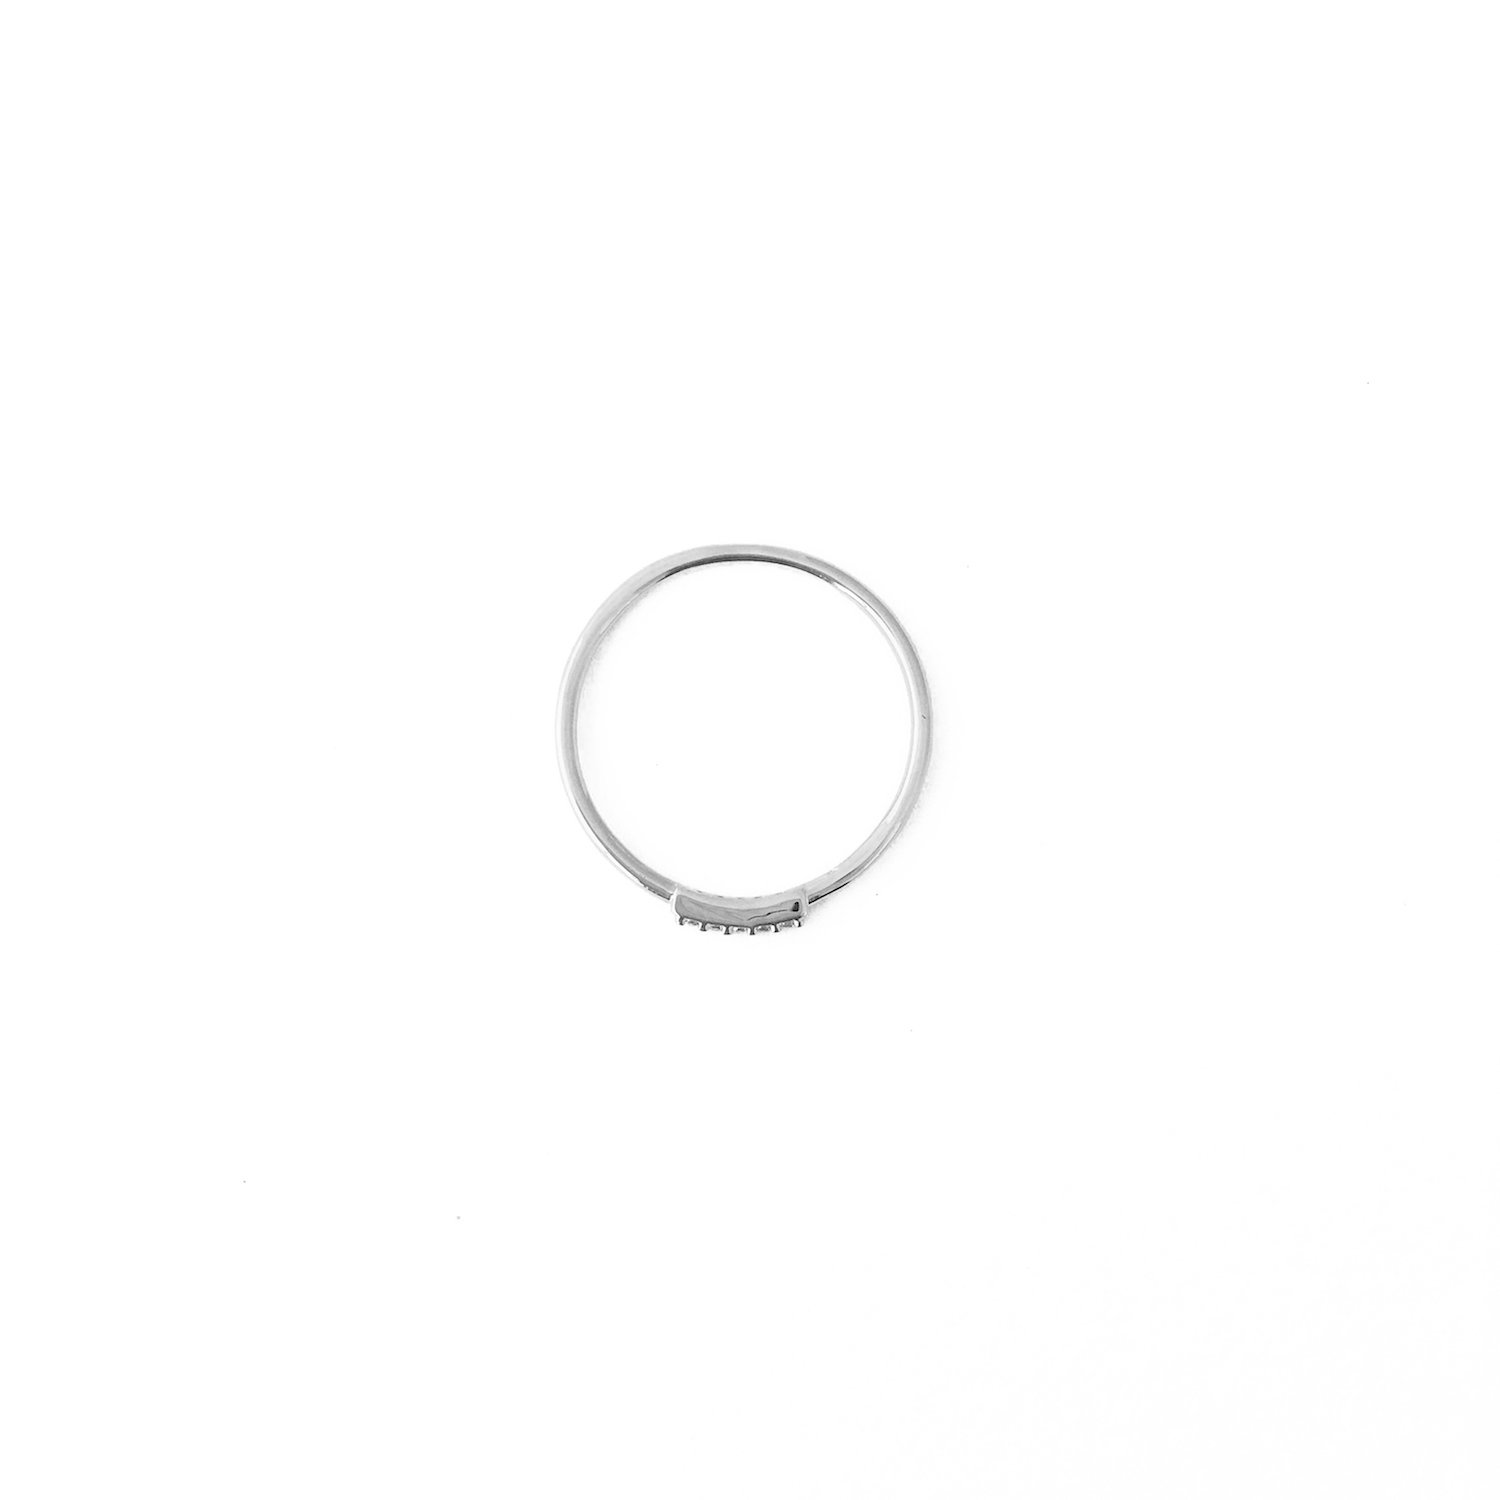 HONEYCAT Mini Crystal Row Ring in Sterling Silver Plate | Minimalist, Delicate Jewelry (Silver 8) by HONEYCAT (Image #1)